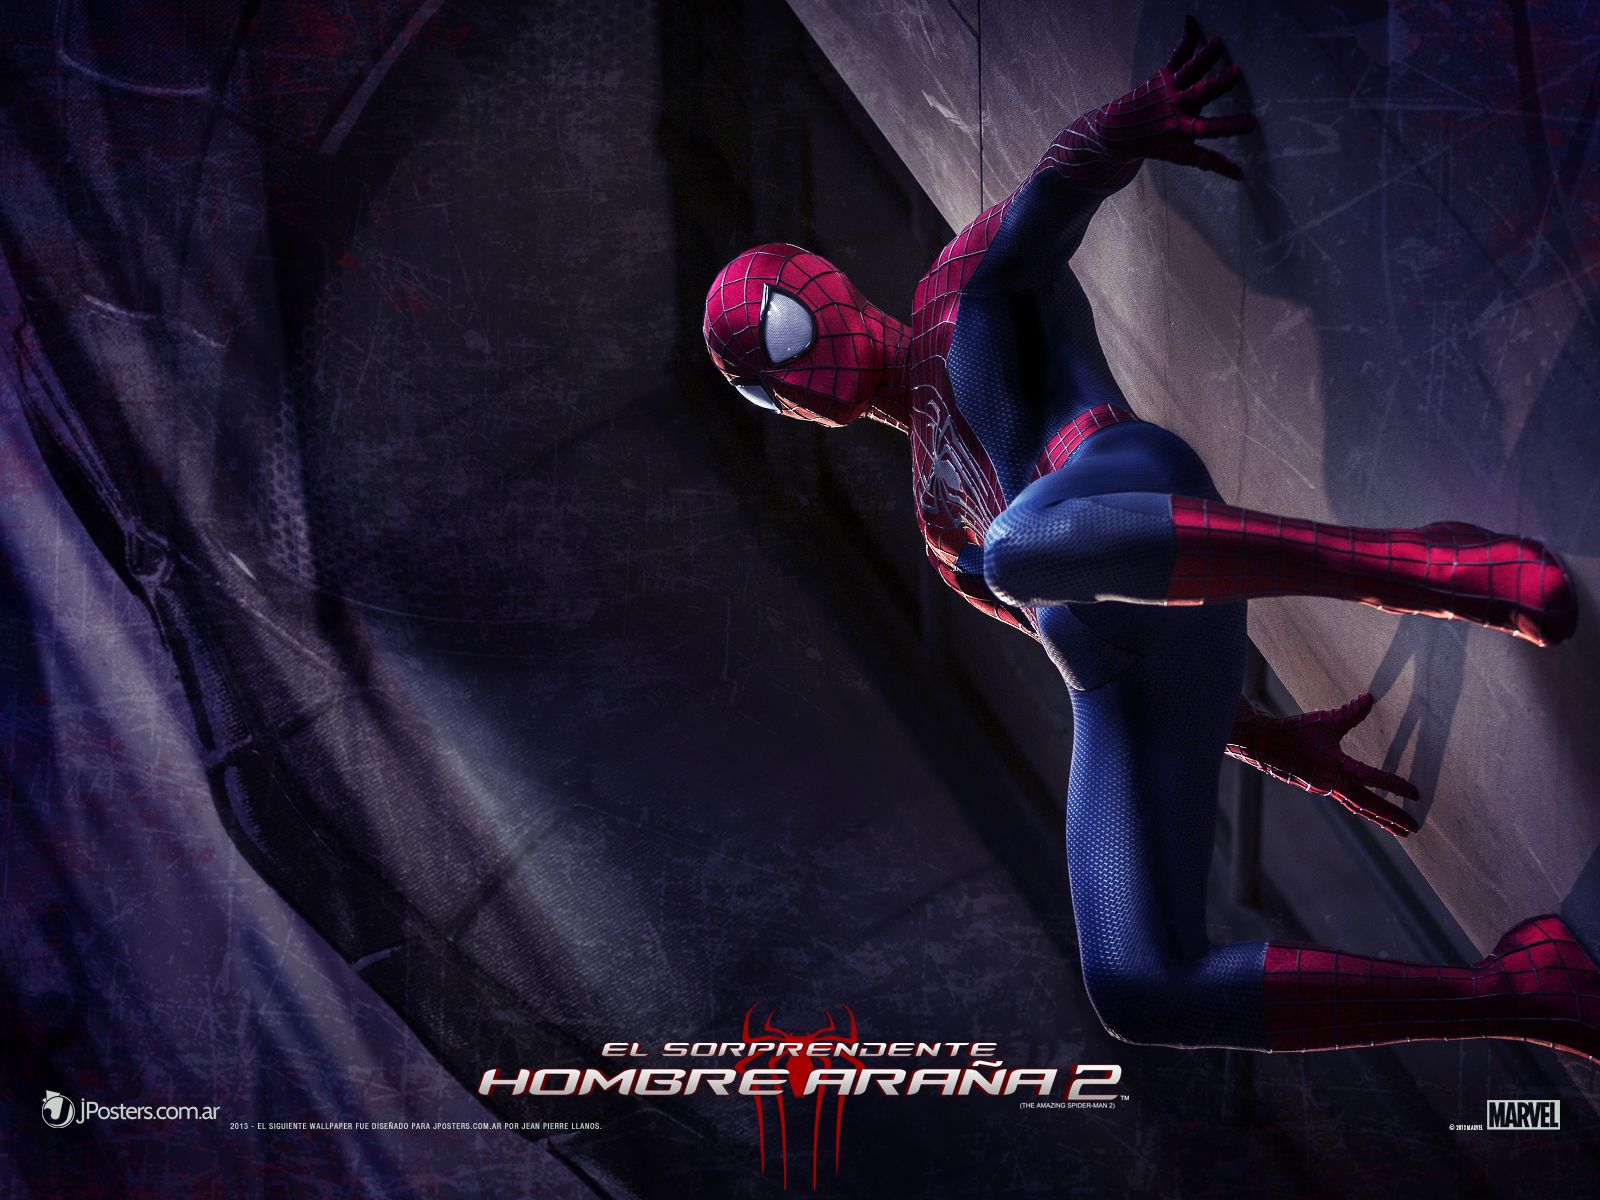 31 spiderman hd wallpaper - photo #17